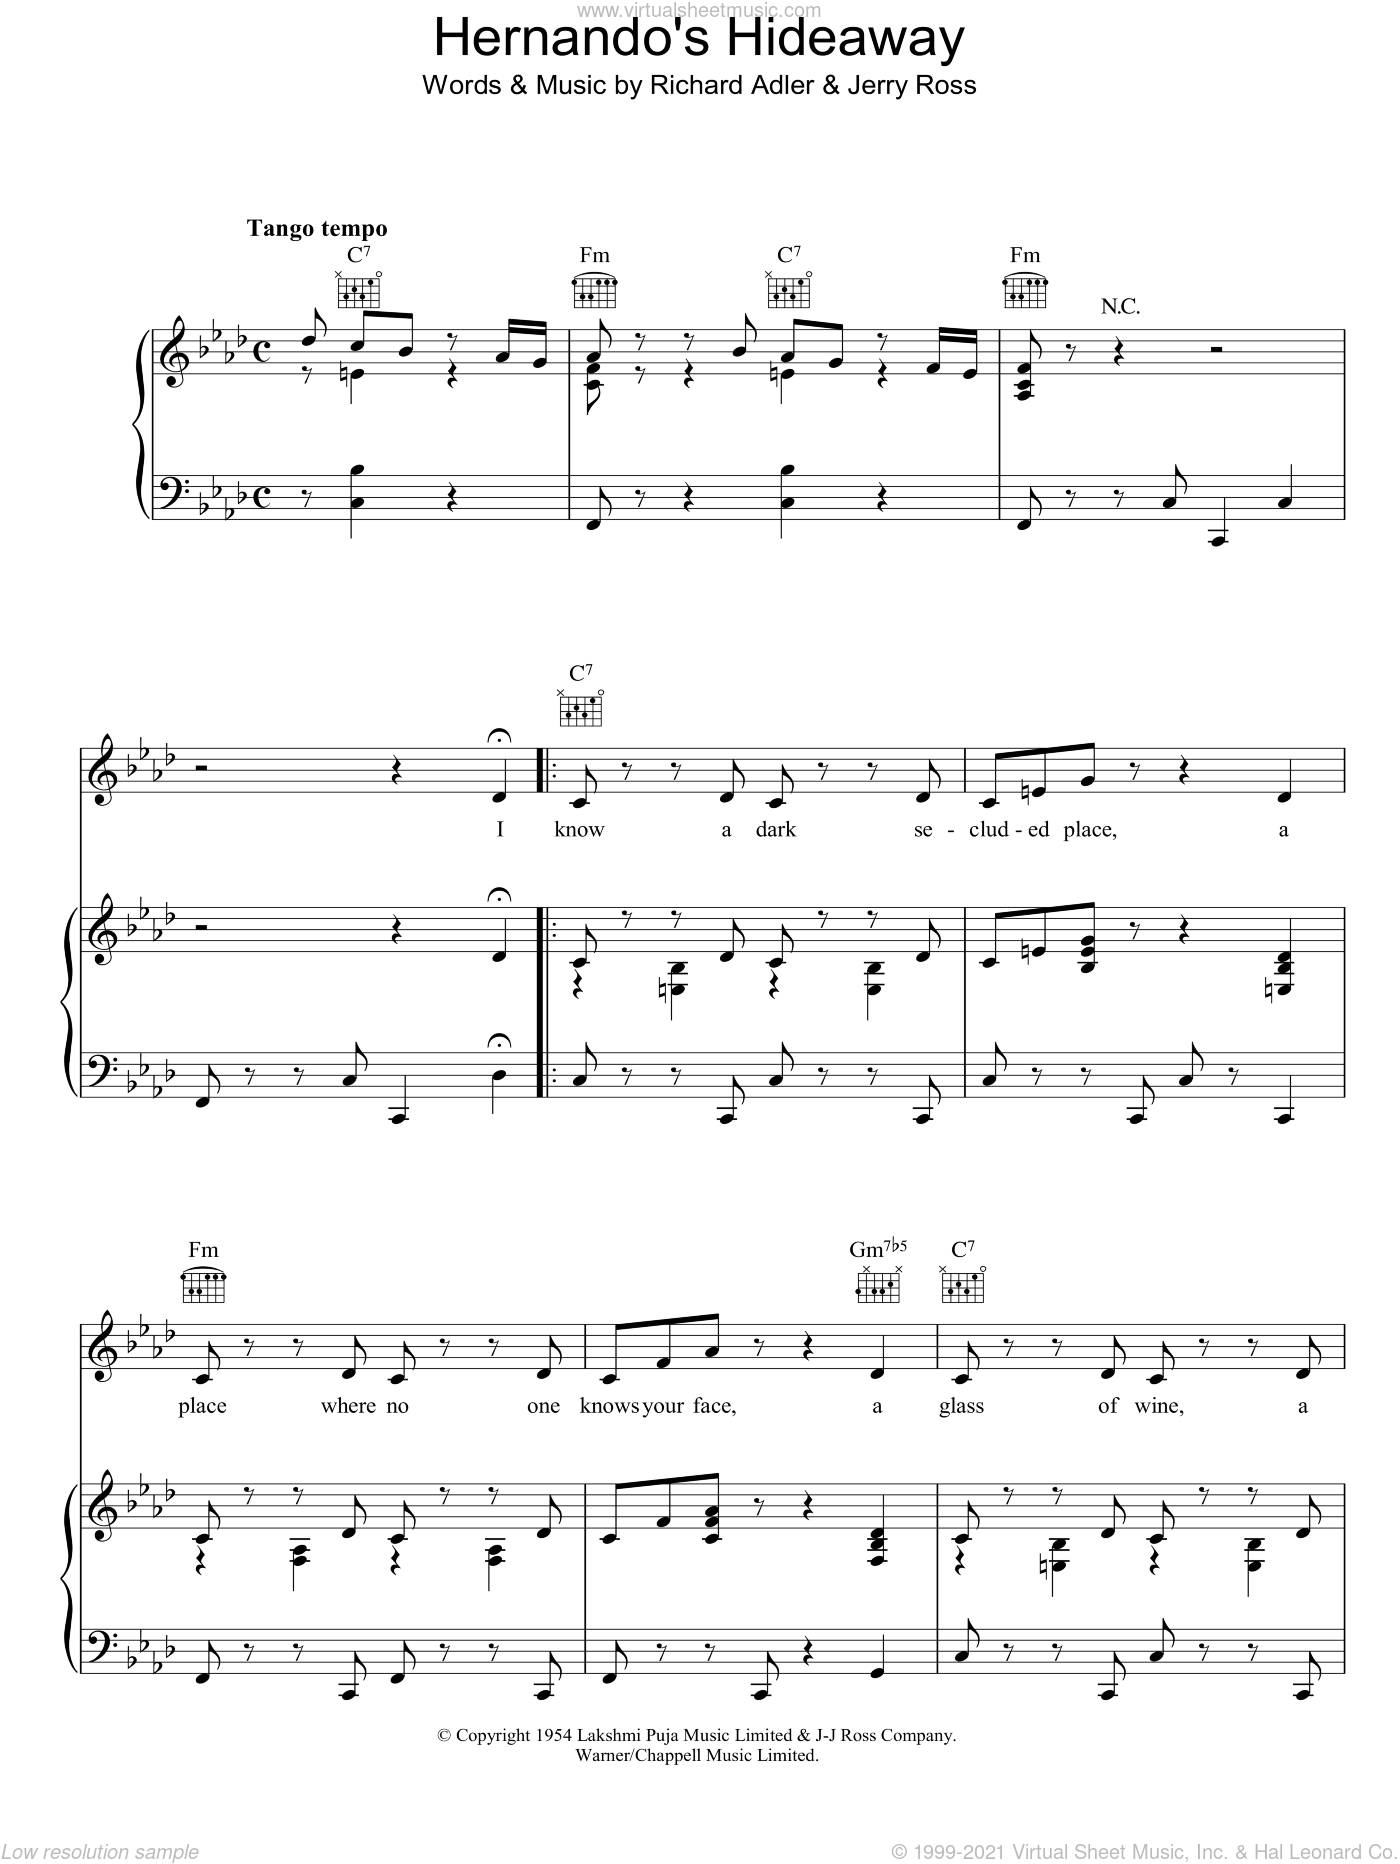 Hernando's Hideaway sheet music for voice, piano or guitar by Richard Adler and Jerry Ross, intermediate. Score Image Preview.